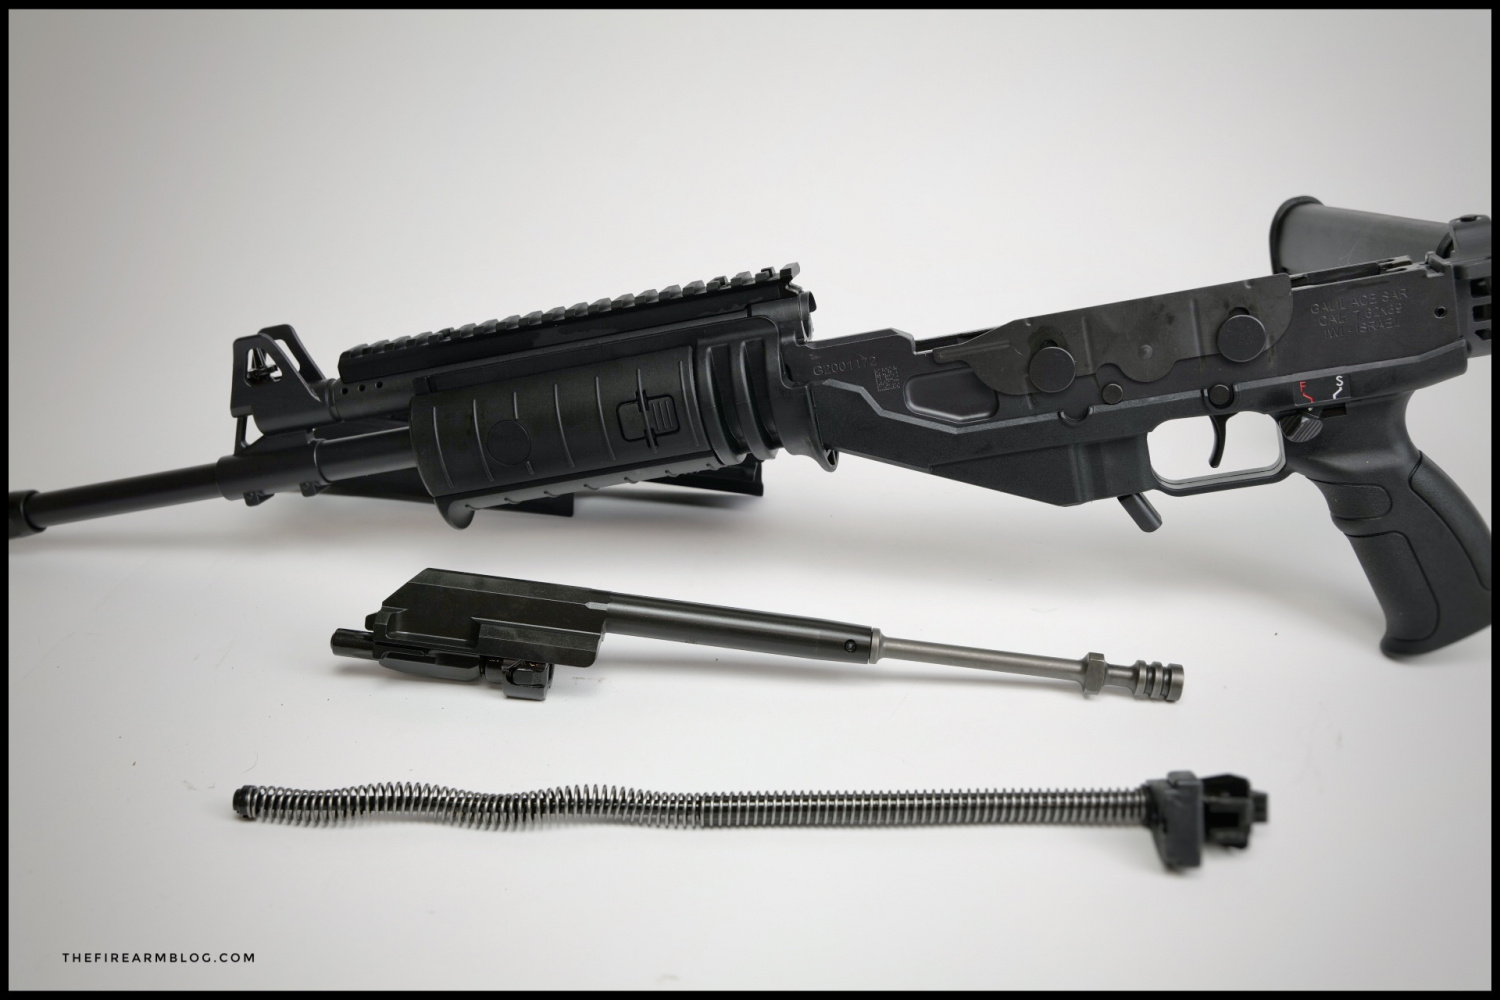 The Galil ACE Suppressed - KNS Style